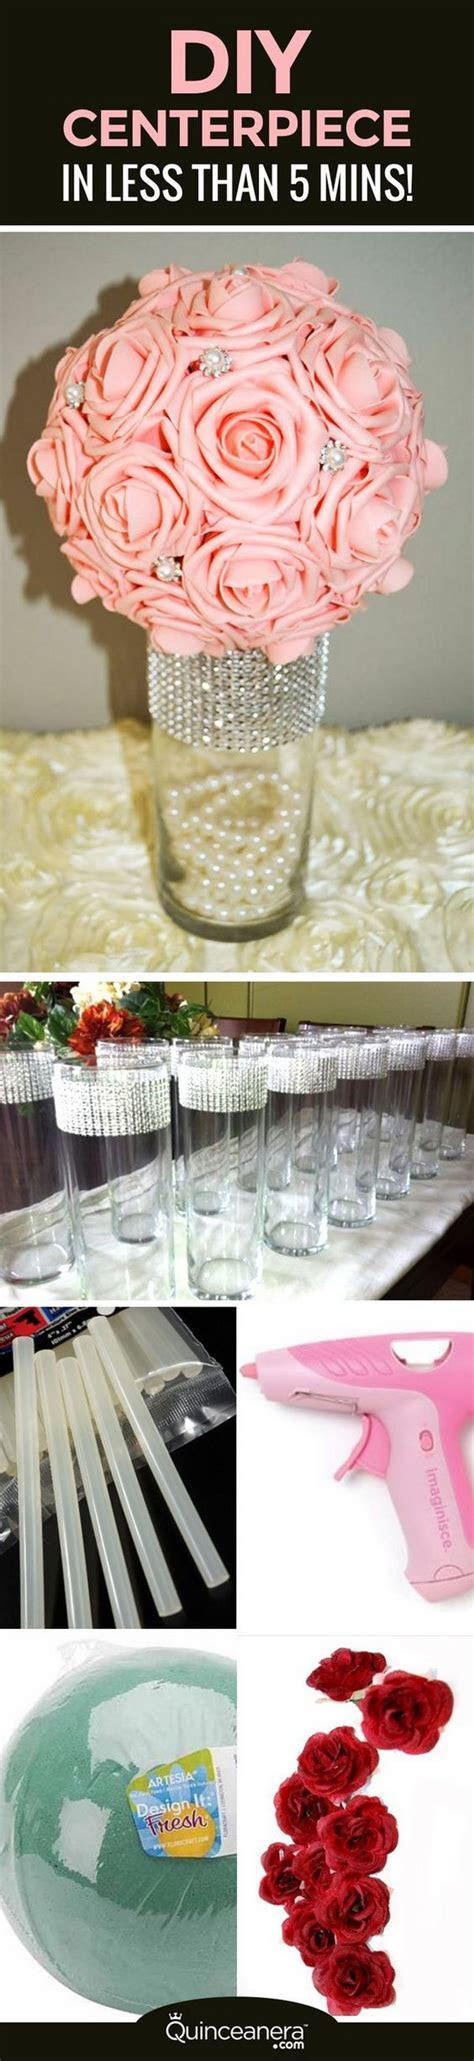 Awesome DIY Wedding Centerpiece Ideas & Tutorials